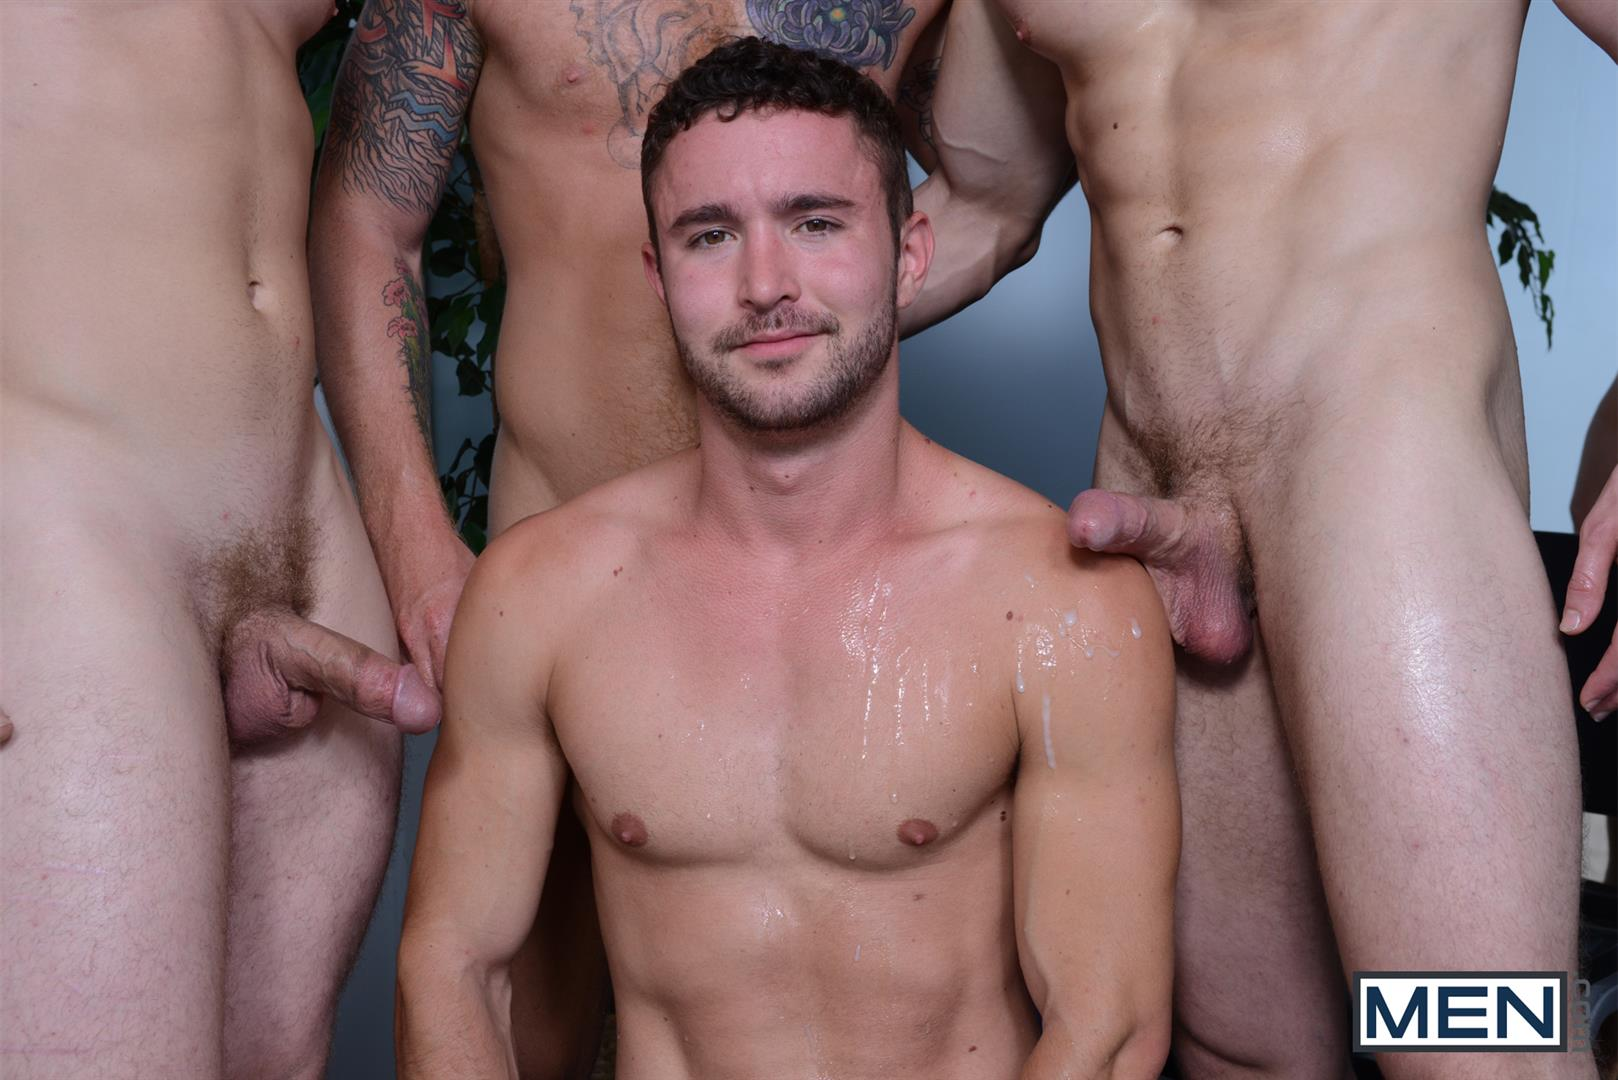 Men-Jizz-Orgy-Swingers-Bennett-Anthony-and-Cameron-Foster-and-Colt-Rivers-and-Tom-Faulk-Fucking-Bathroom-Amateur-Gay-Porn-37 Hung Golfing Buddies Fucking In The Bathroom and Clubhouse